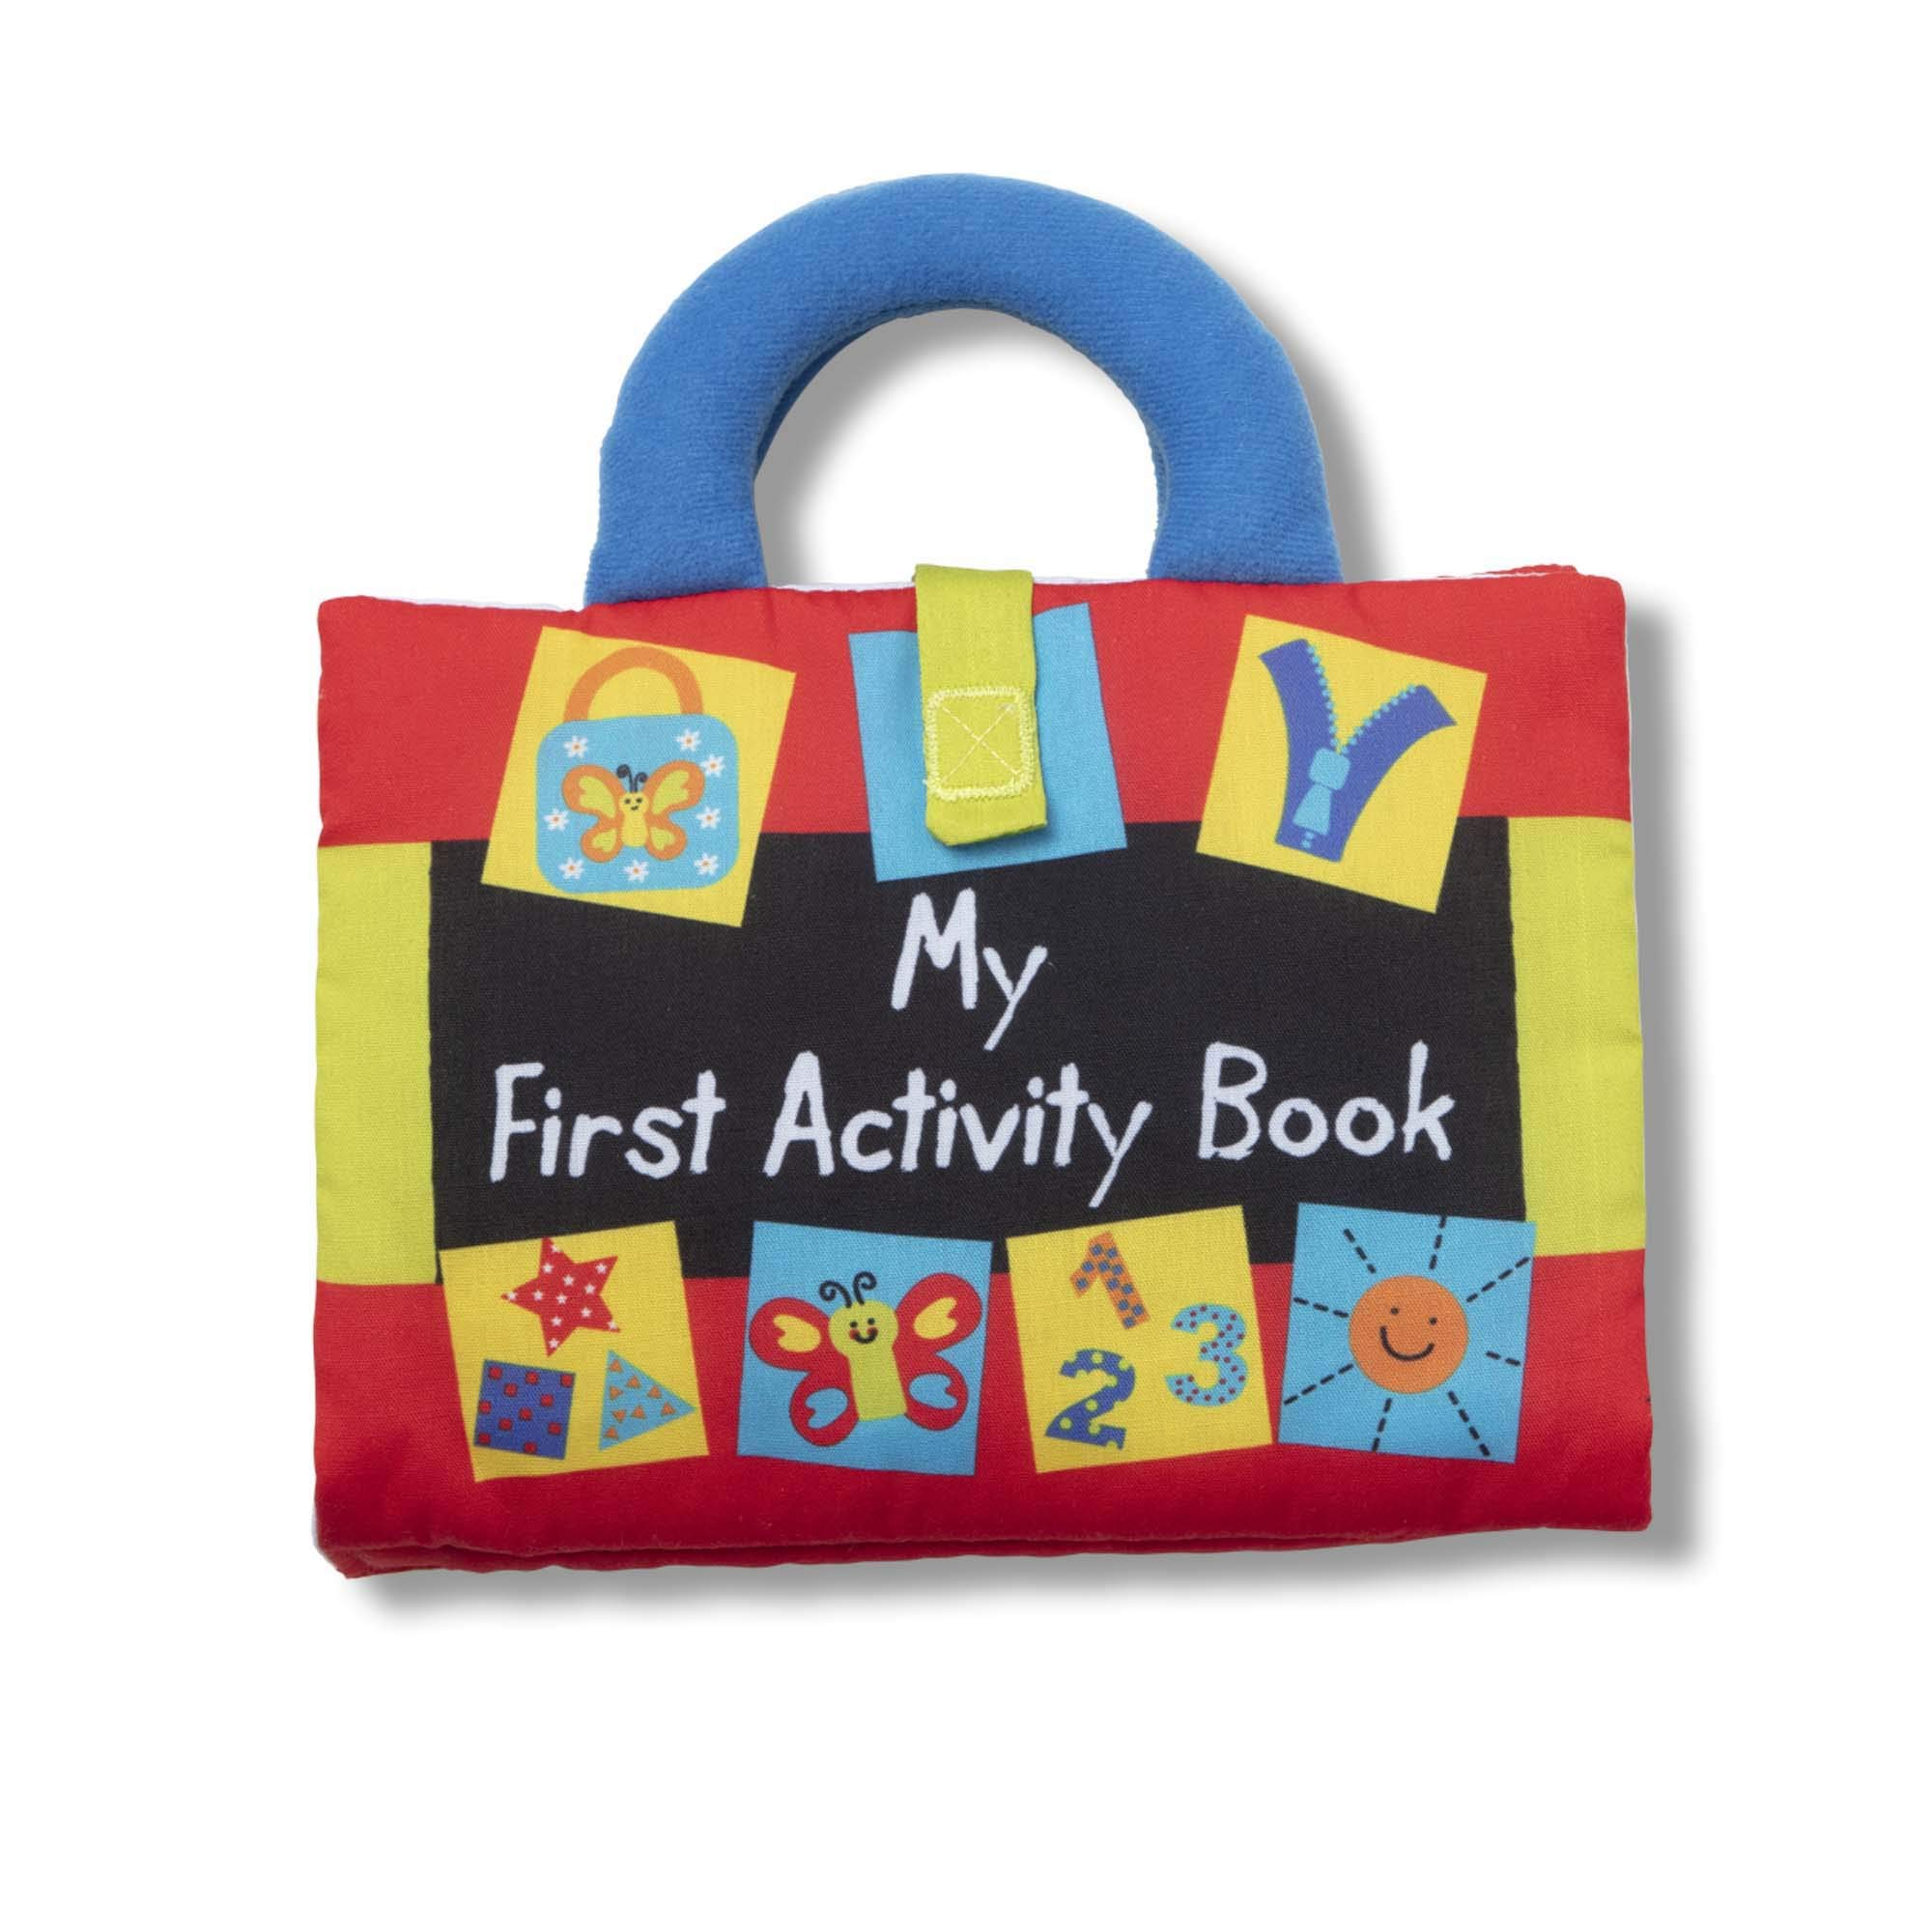 Melissa & Doug K'S Kids My First Activity Book 8-Page Soft Book for Babies & Toddlers